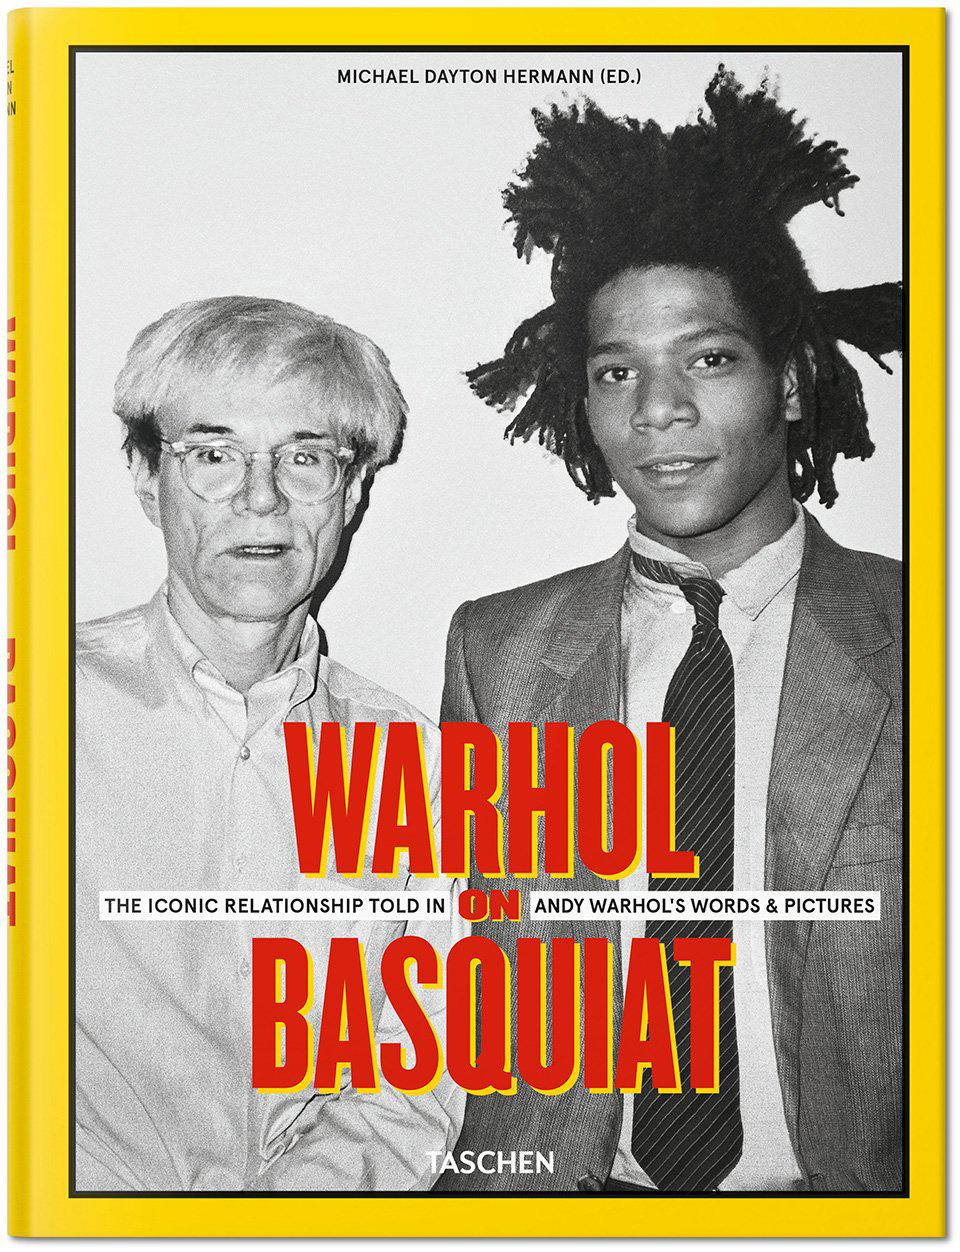 """Warhol on Basquiat. The Iconic Relationship Told in Andy Warhol's Words and Pictures"", Michael Dayton Hermann, The Andy Warhol Foundation for the Visual Arts, auf Englisch, Taschen, 312 Seiten, 50 Euro"